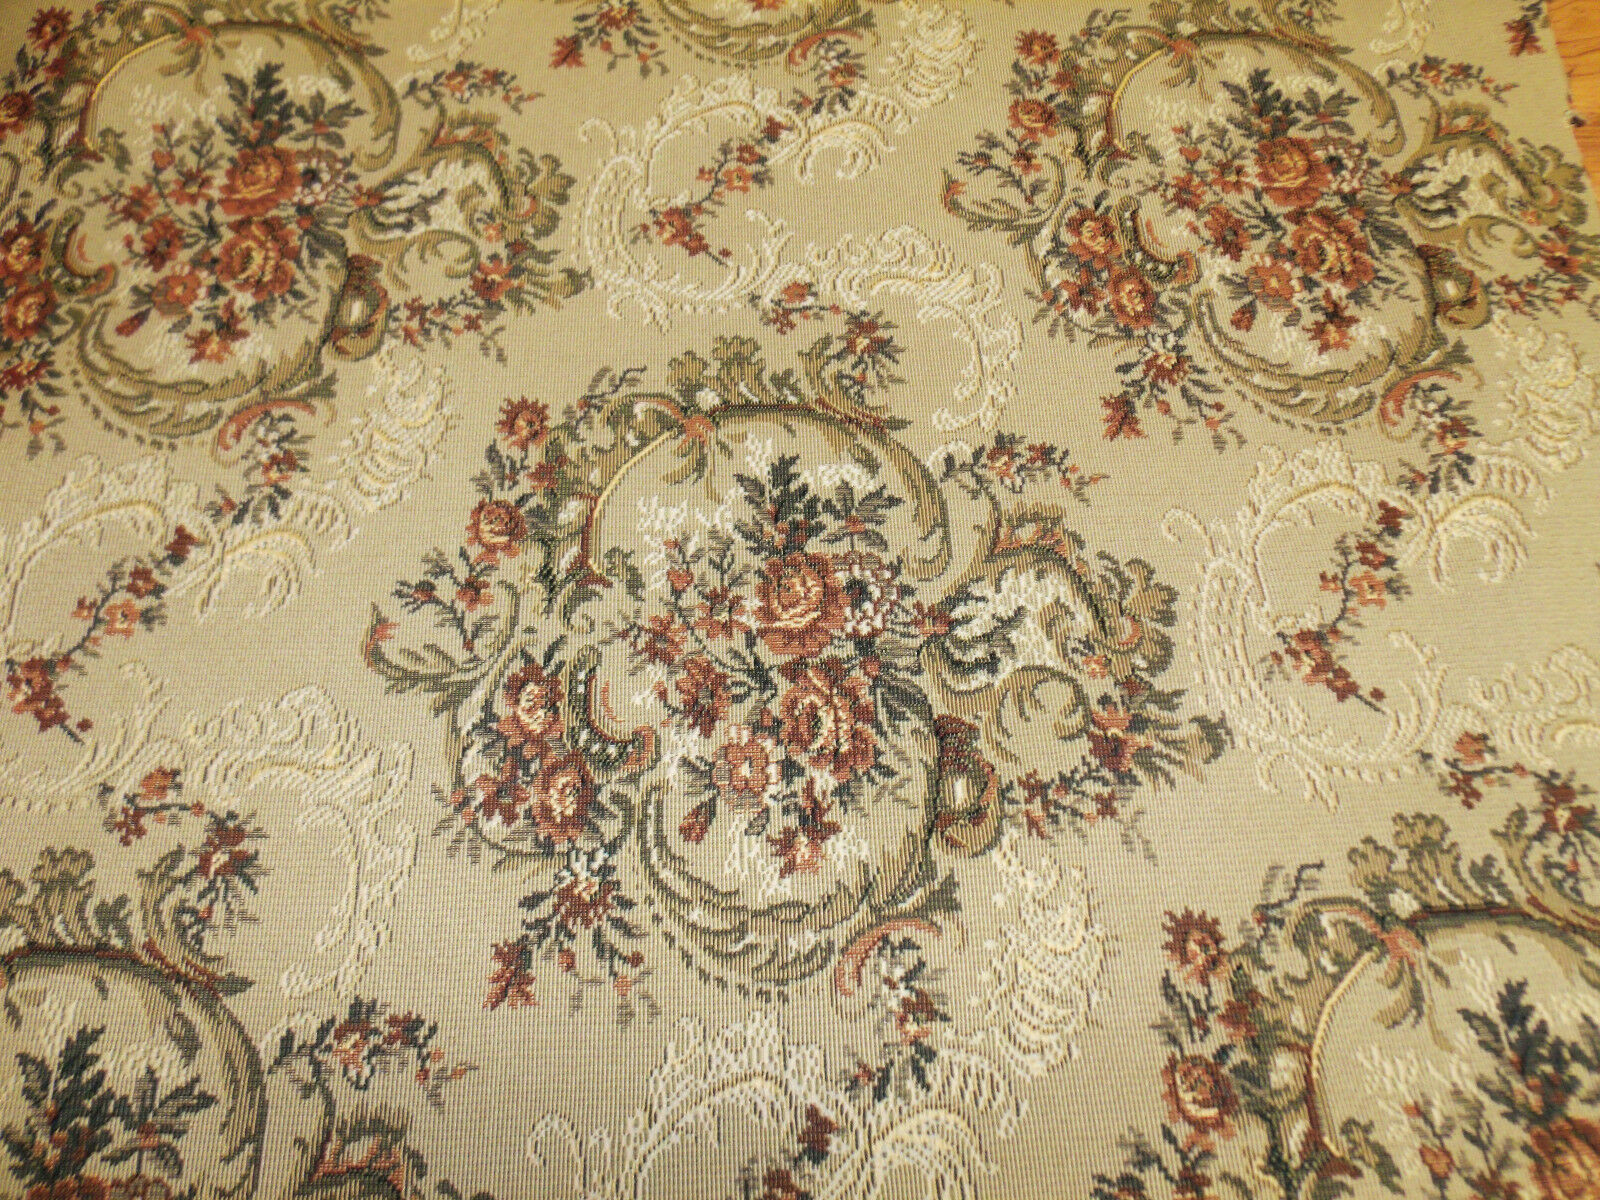 Tapestry Upholstery Fabric 54 Wide By The Yard Quality For Sofas Chairs 1 Of 6free Shipping See More